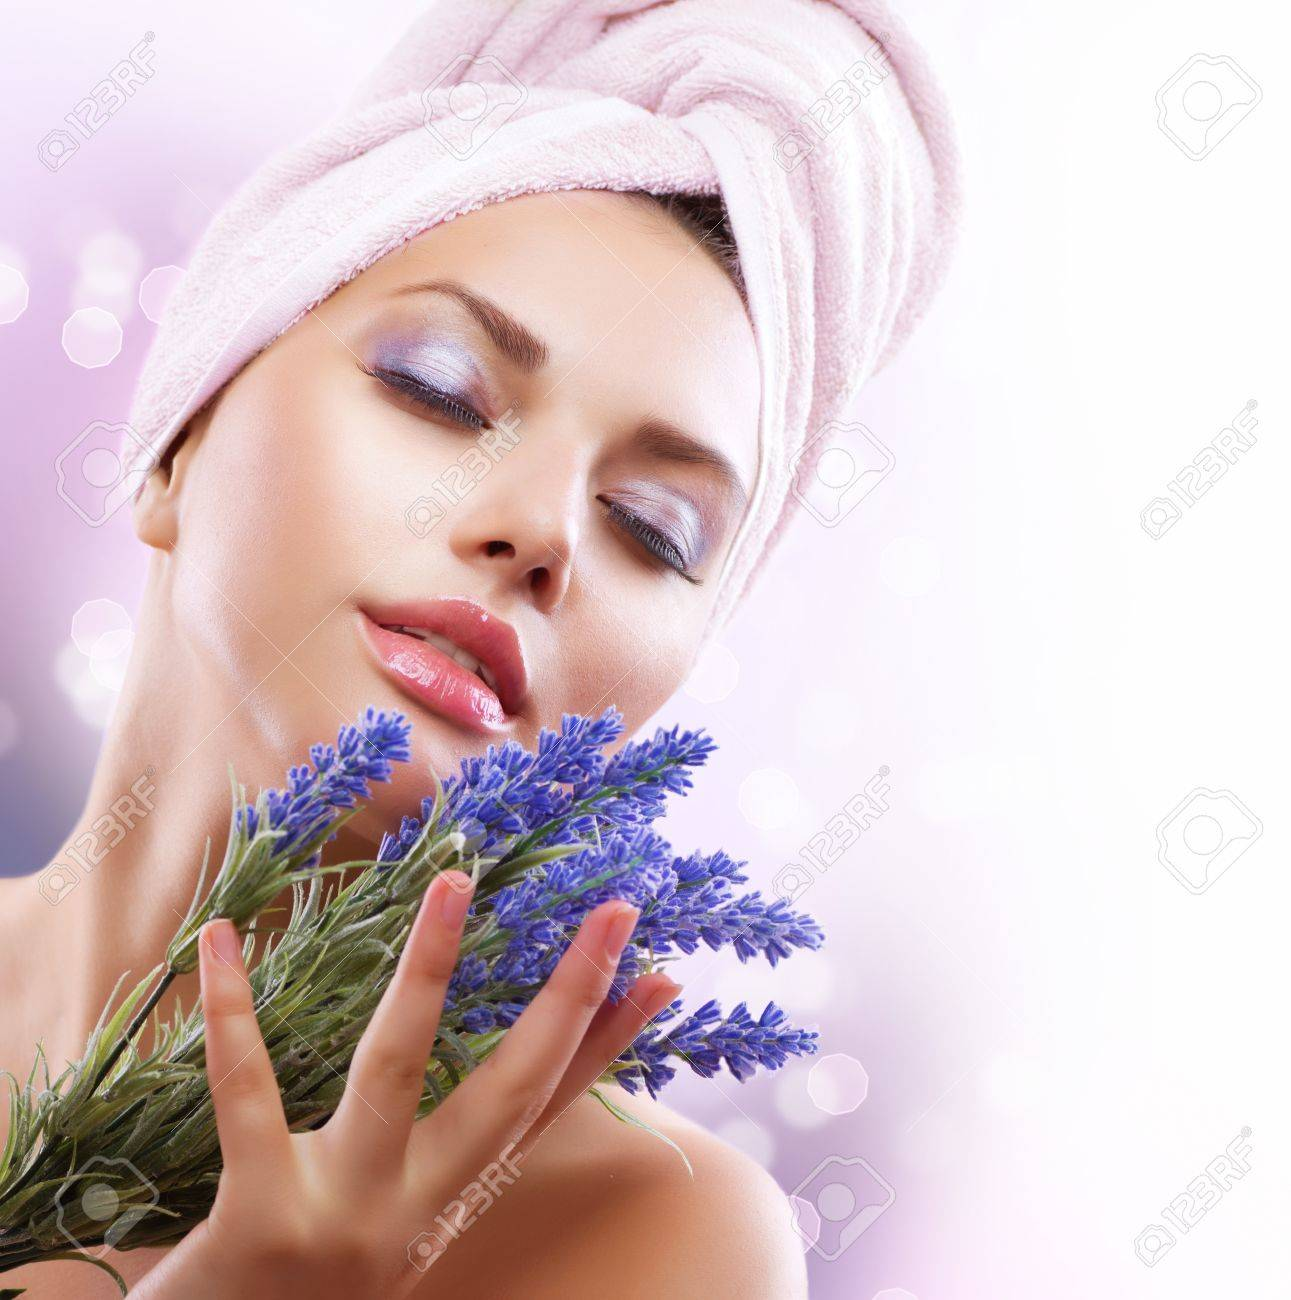 Spa Girl with Lavender Flowers  Beautiful Young Woman After Bath Stock Photo - 14646699